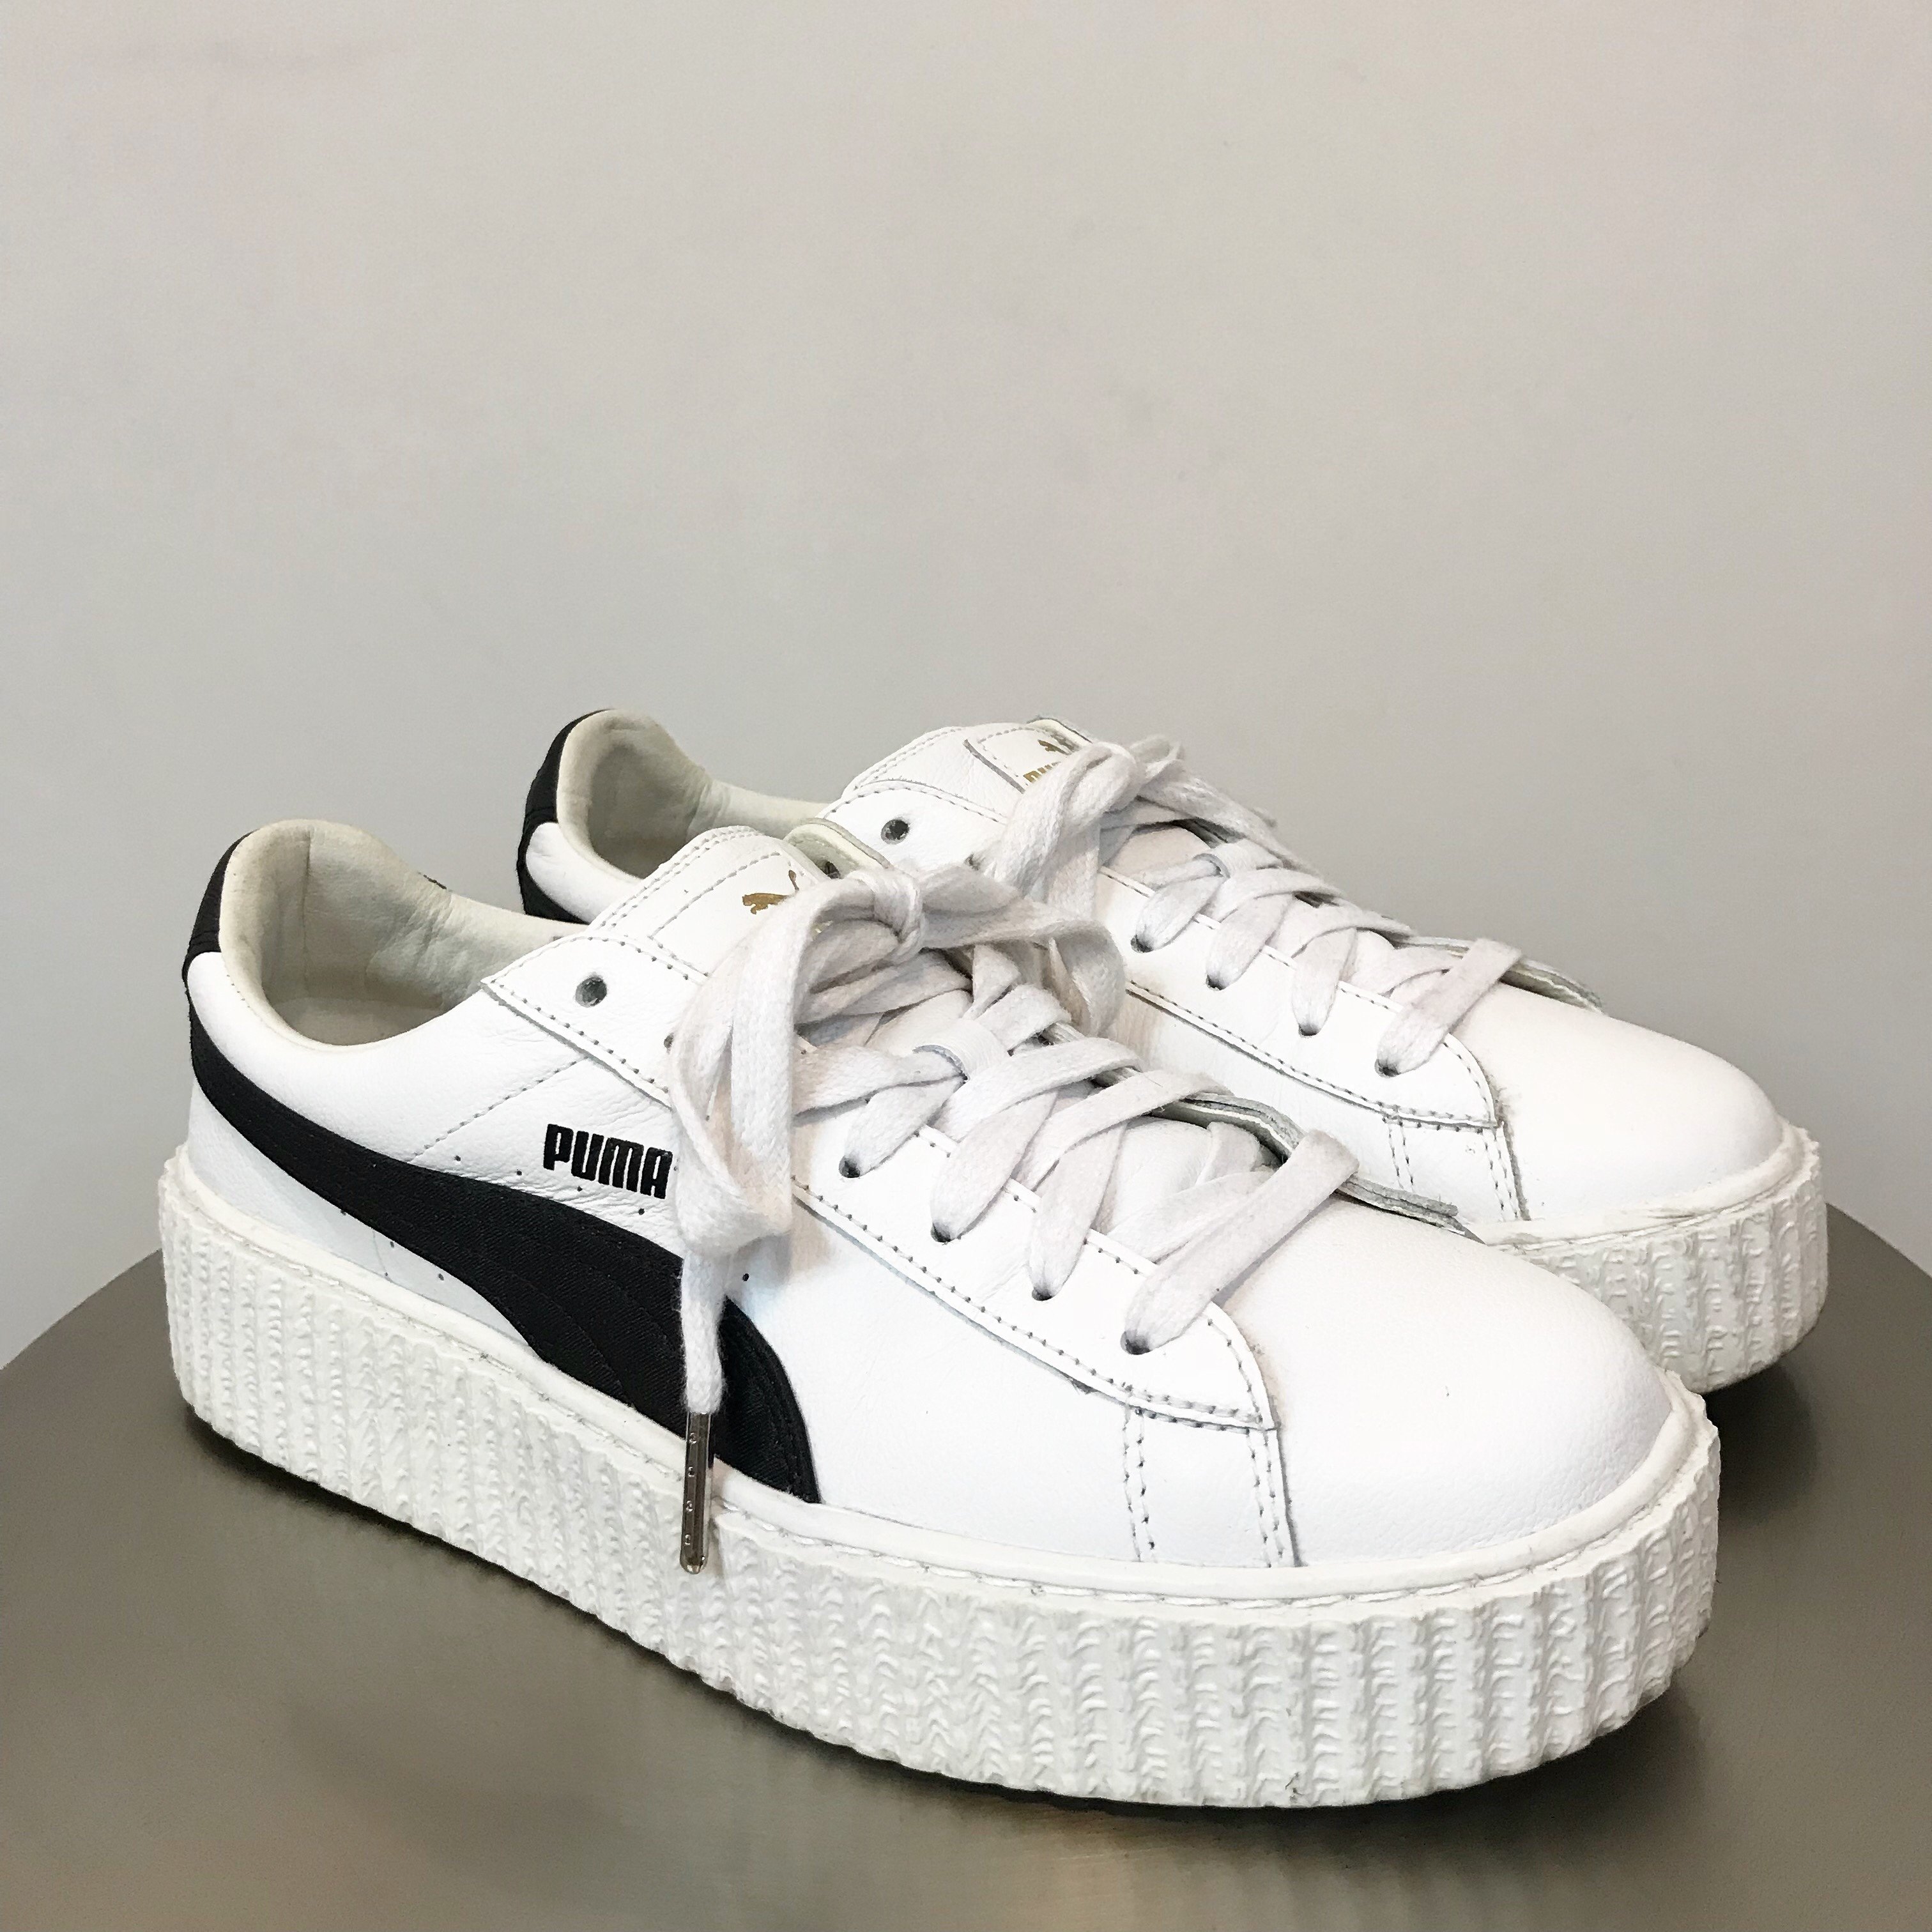 new product 7e880 87b5c White/ Black Rihanna Fenty Puma Creepers Women's... - Depop